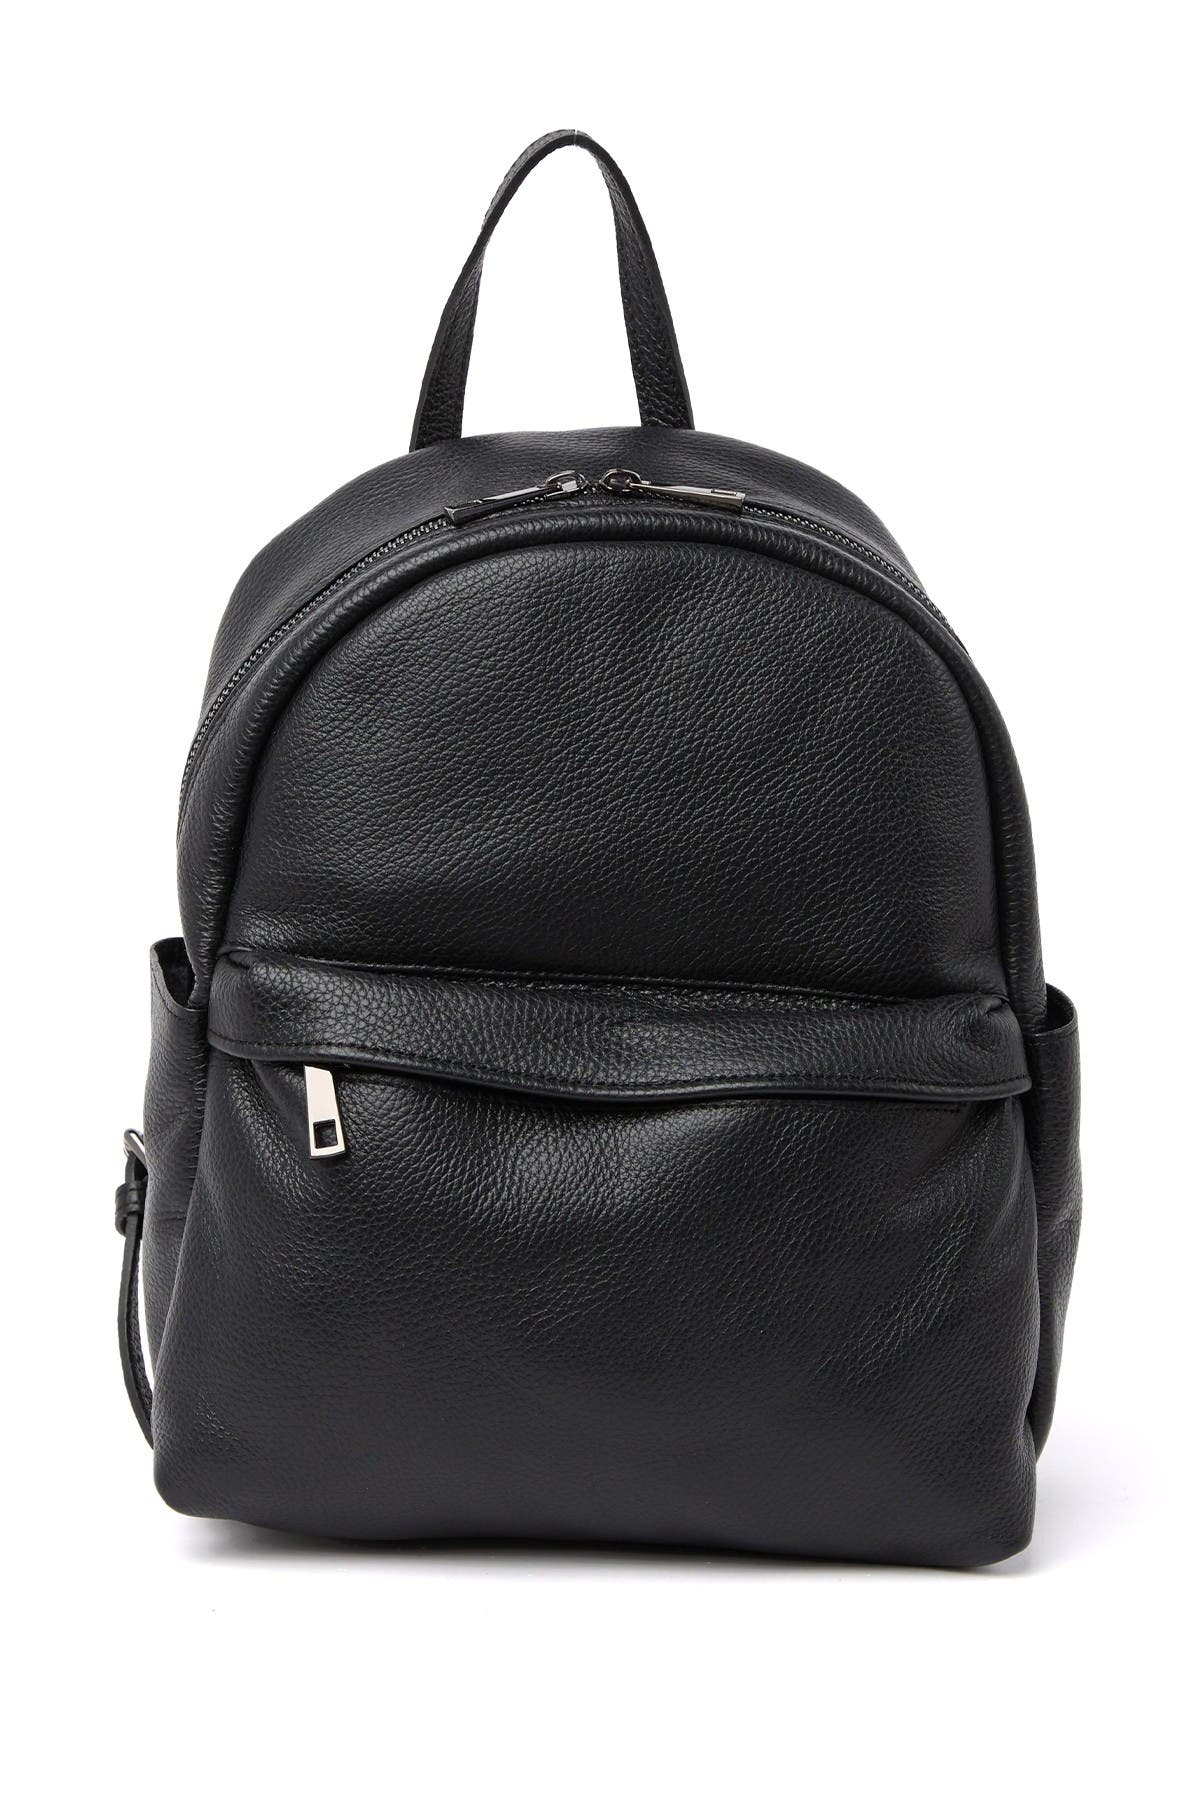 Image of Massimo Castelli Leather Backpack